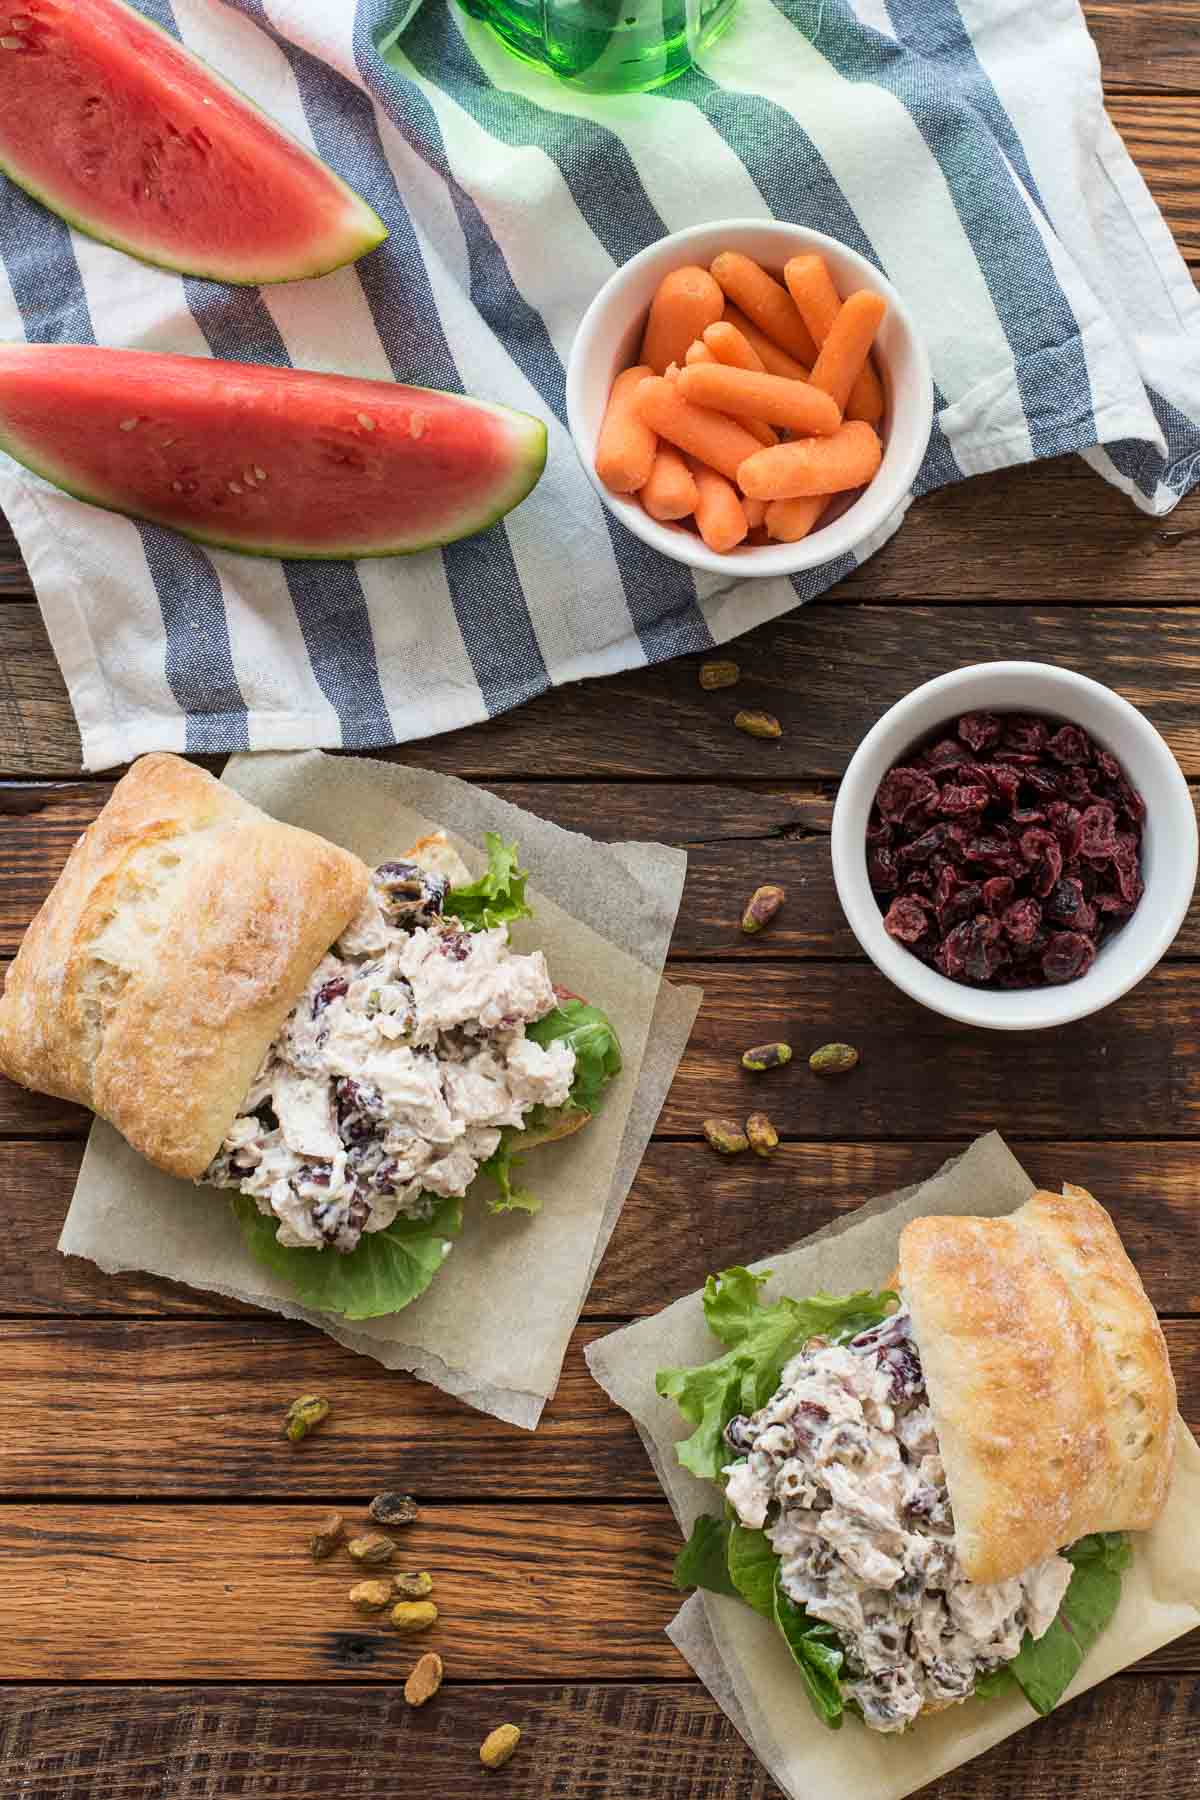 Picnic table with Cranberry Chicken Salad Sandwiches, watermelon slices, and carrots